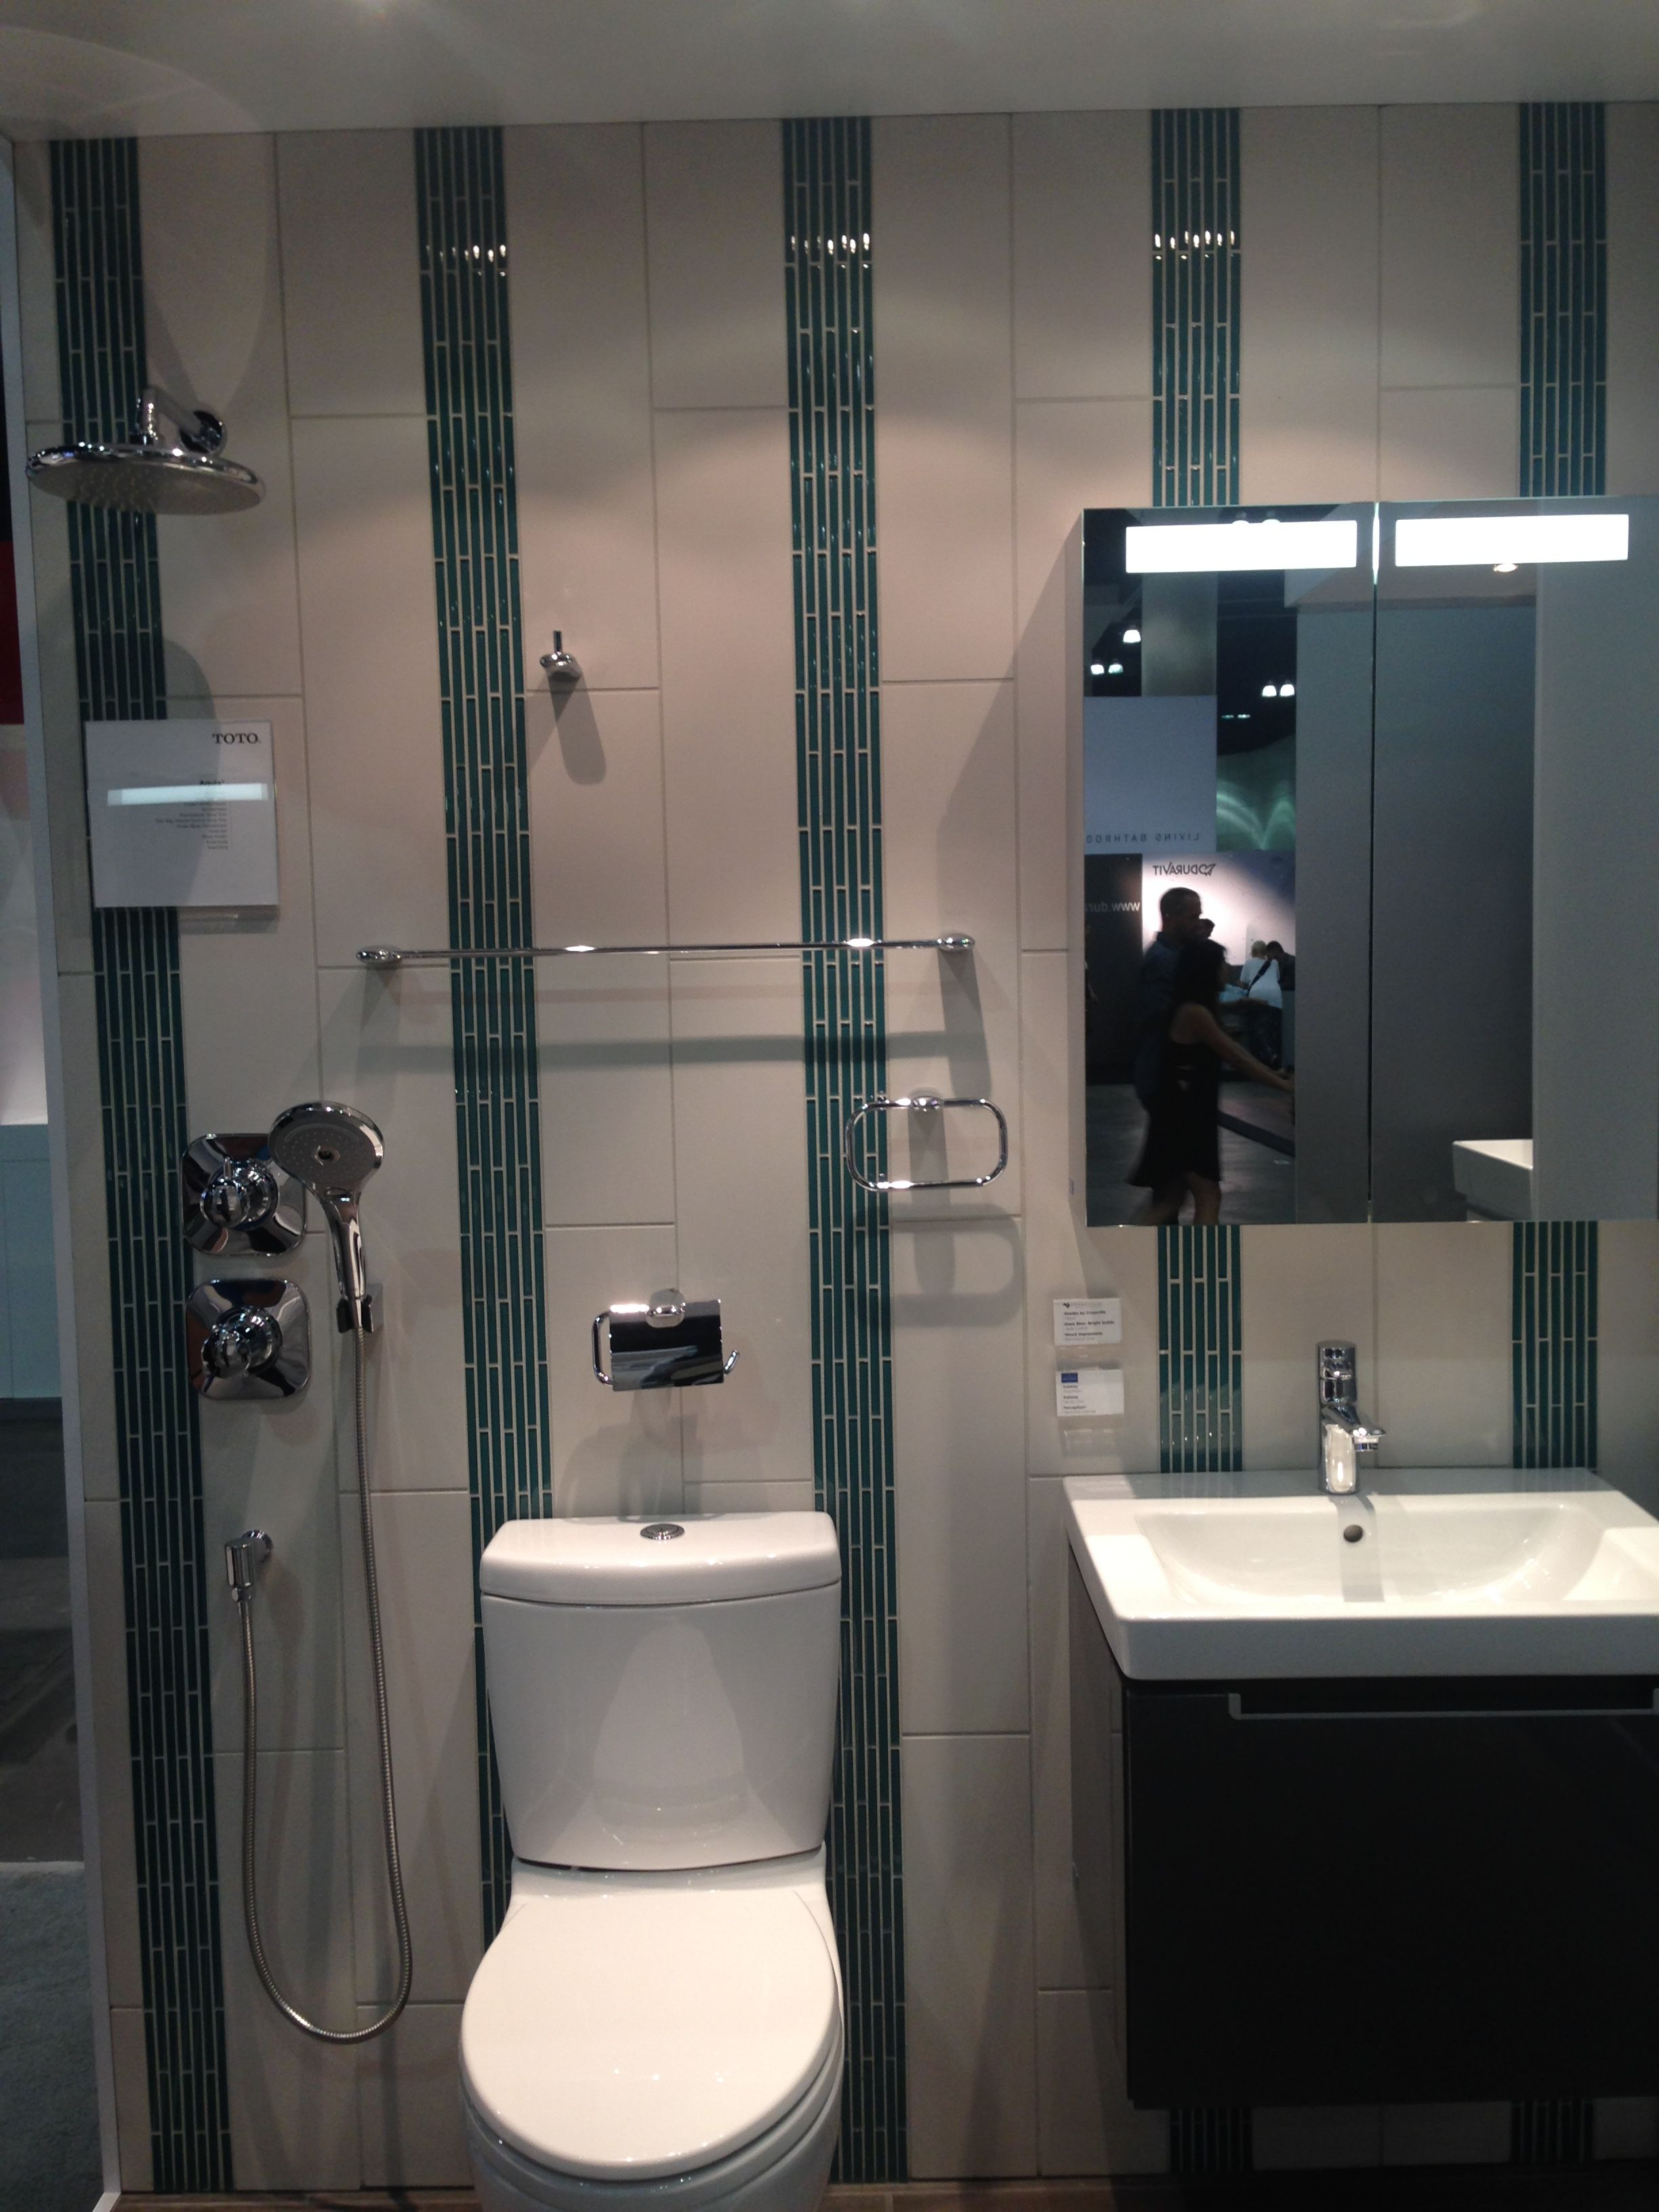 Pin By The Book Of Taste On The John Bathroom Mirror New York City Apartment Lighted Bathroom Mirror [ 3264 x 2448 Pixel ]